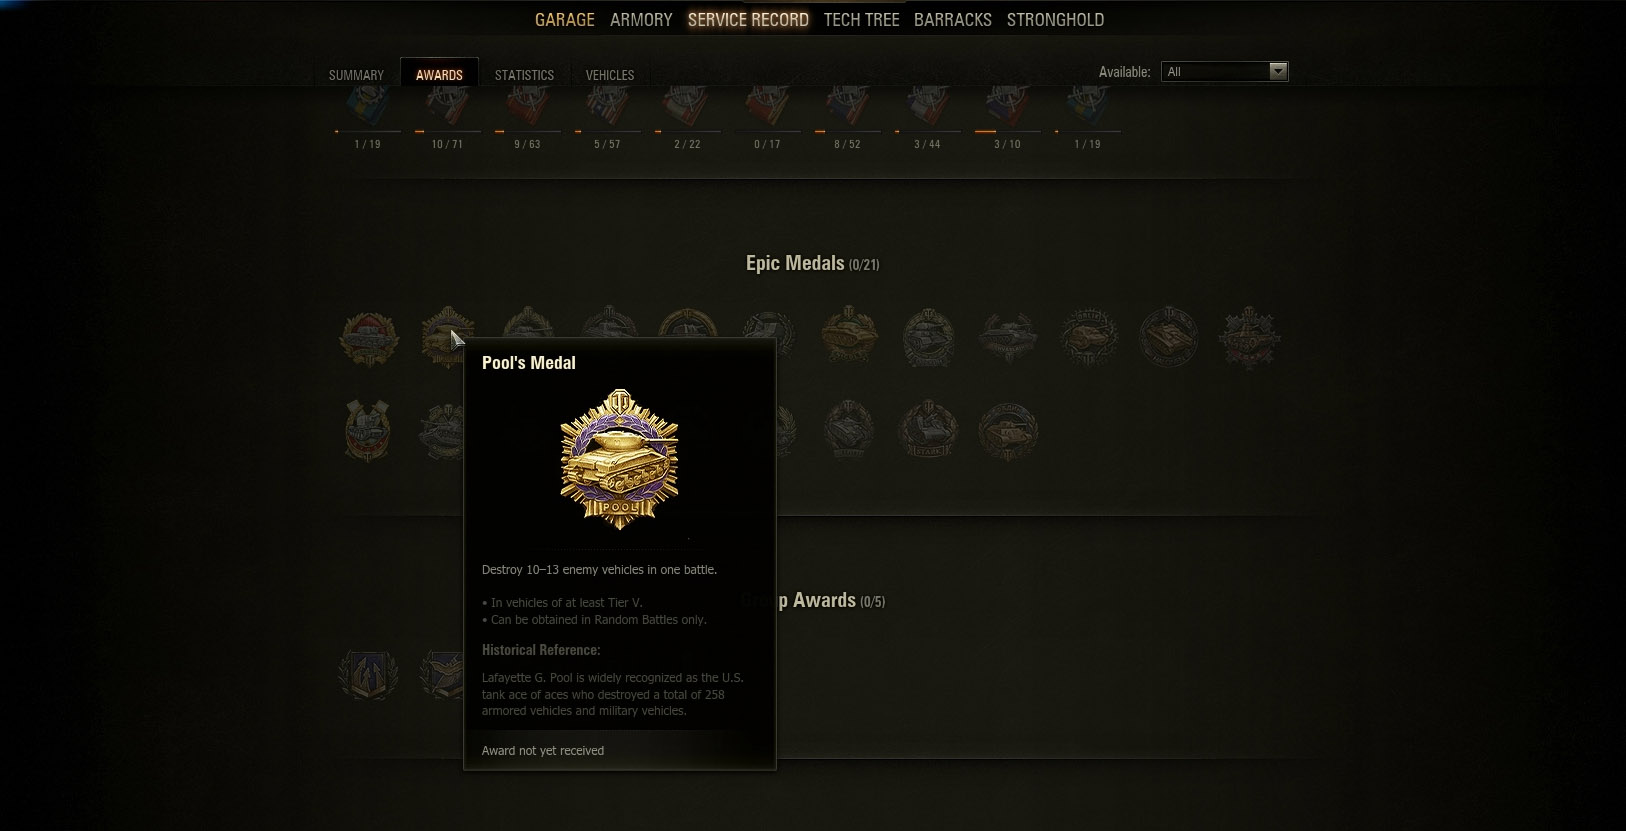 Pool's Medal in World of Tanks is an Epic Medal awarded when a player destroys ten or more tanks during a battle.